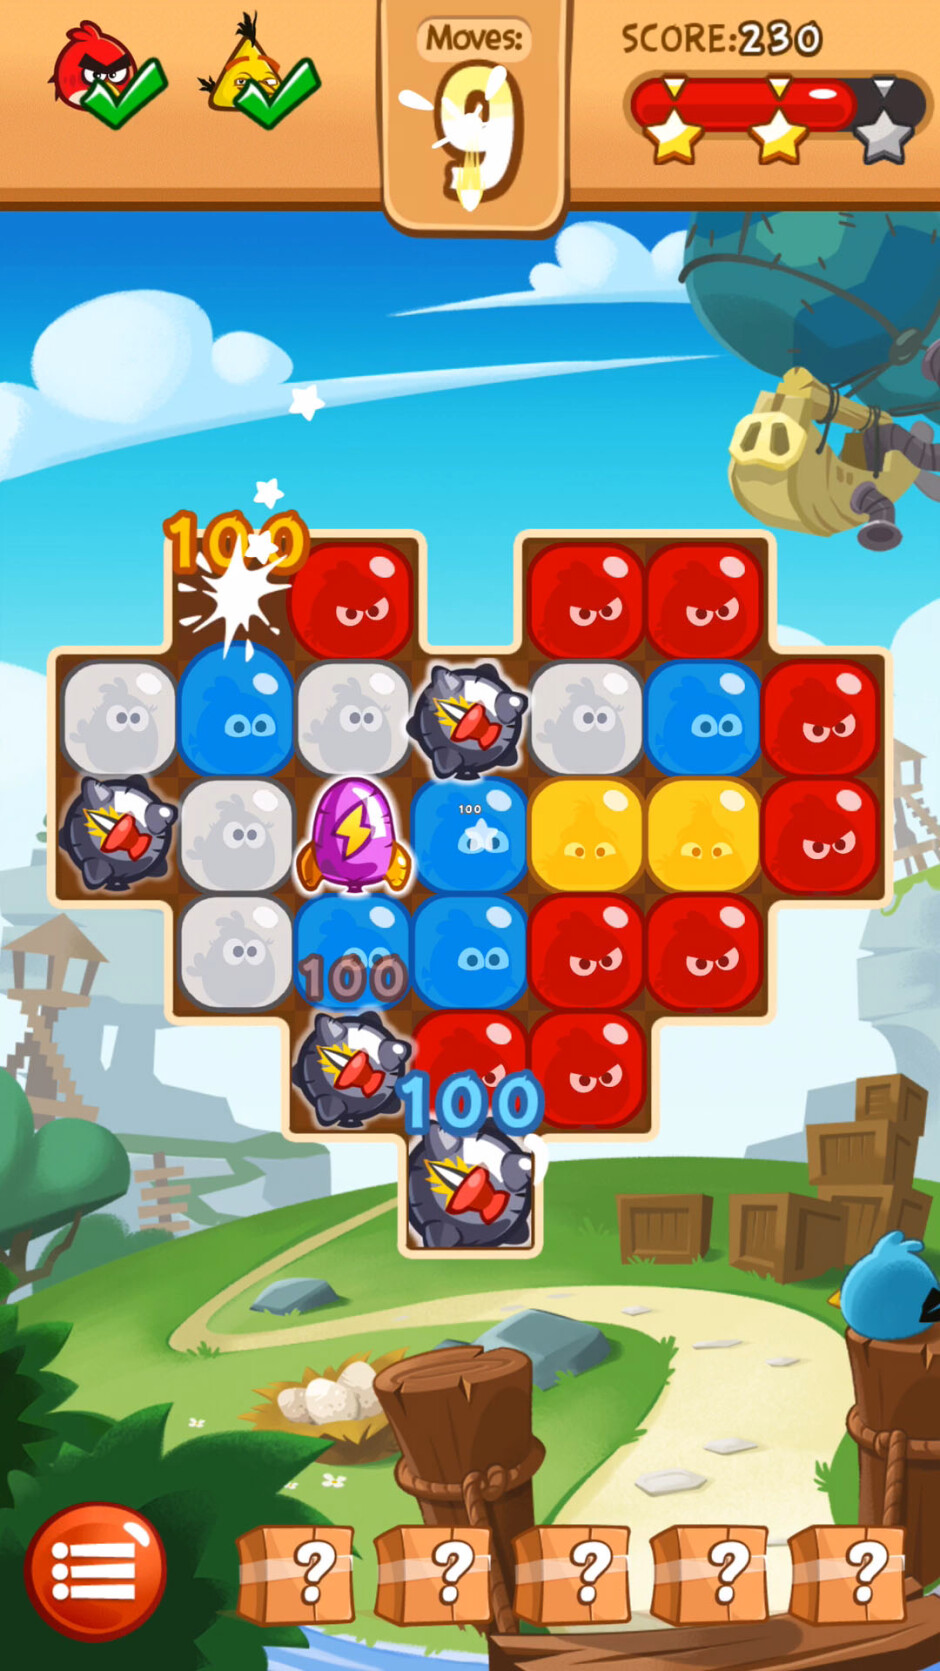 Different Boosters will help you avoid obstacles and get rid of pigs. - Angry Birds Blast Review